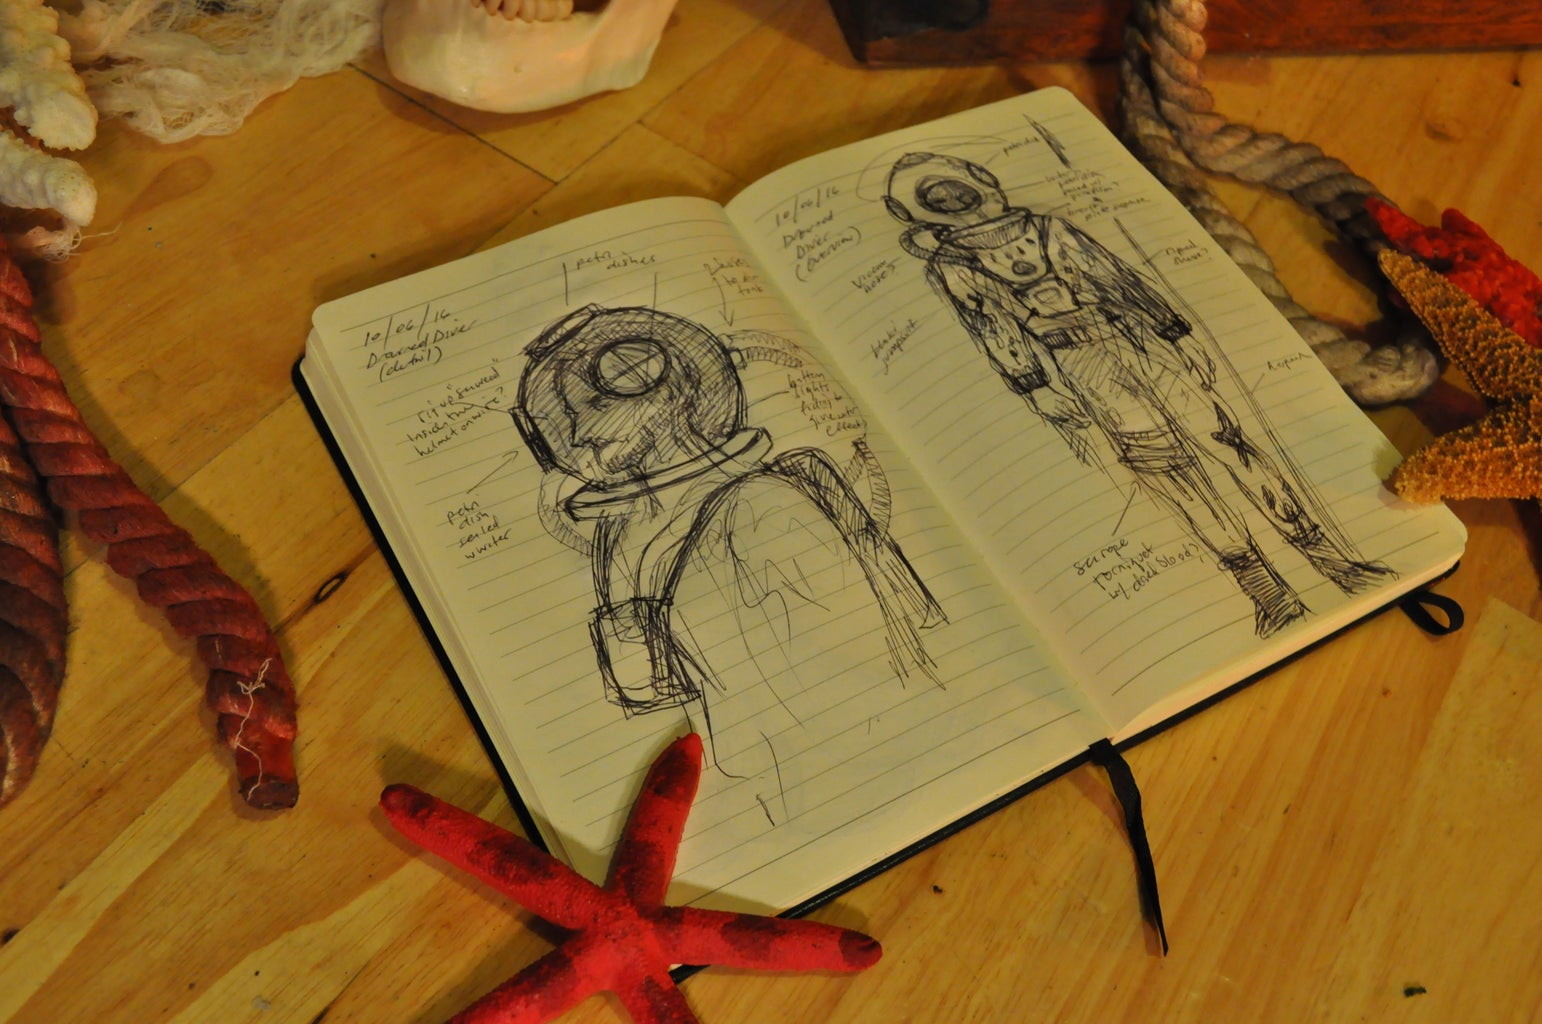 Concepting & Sketches